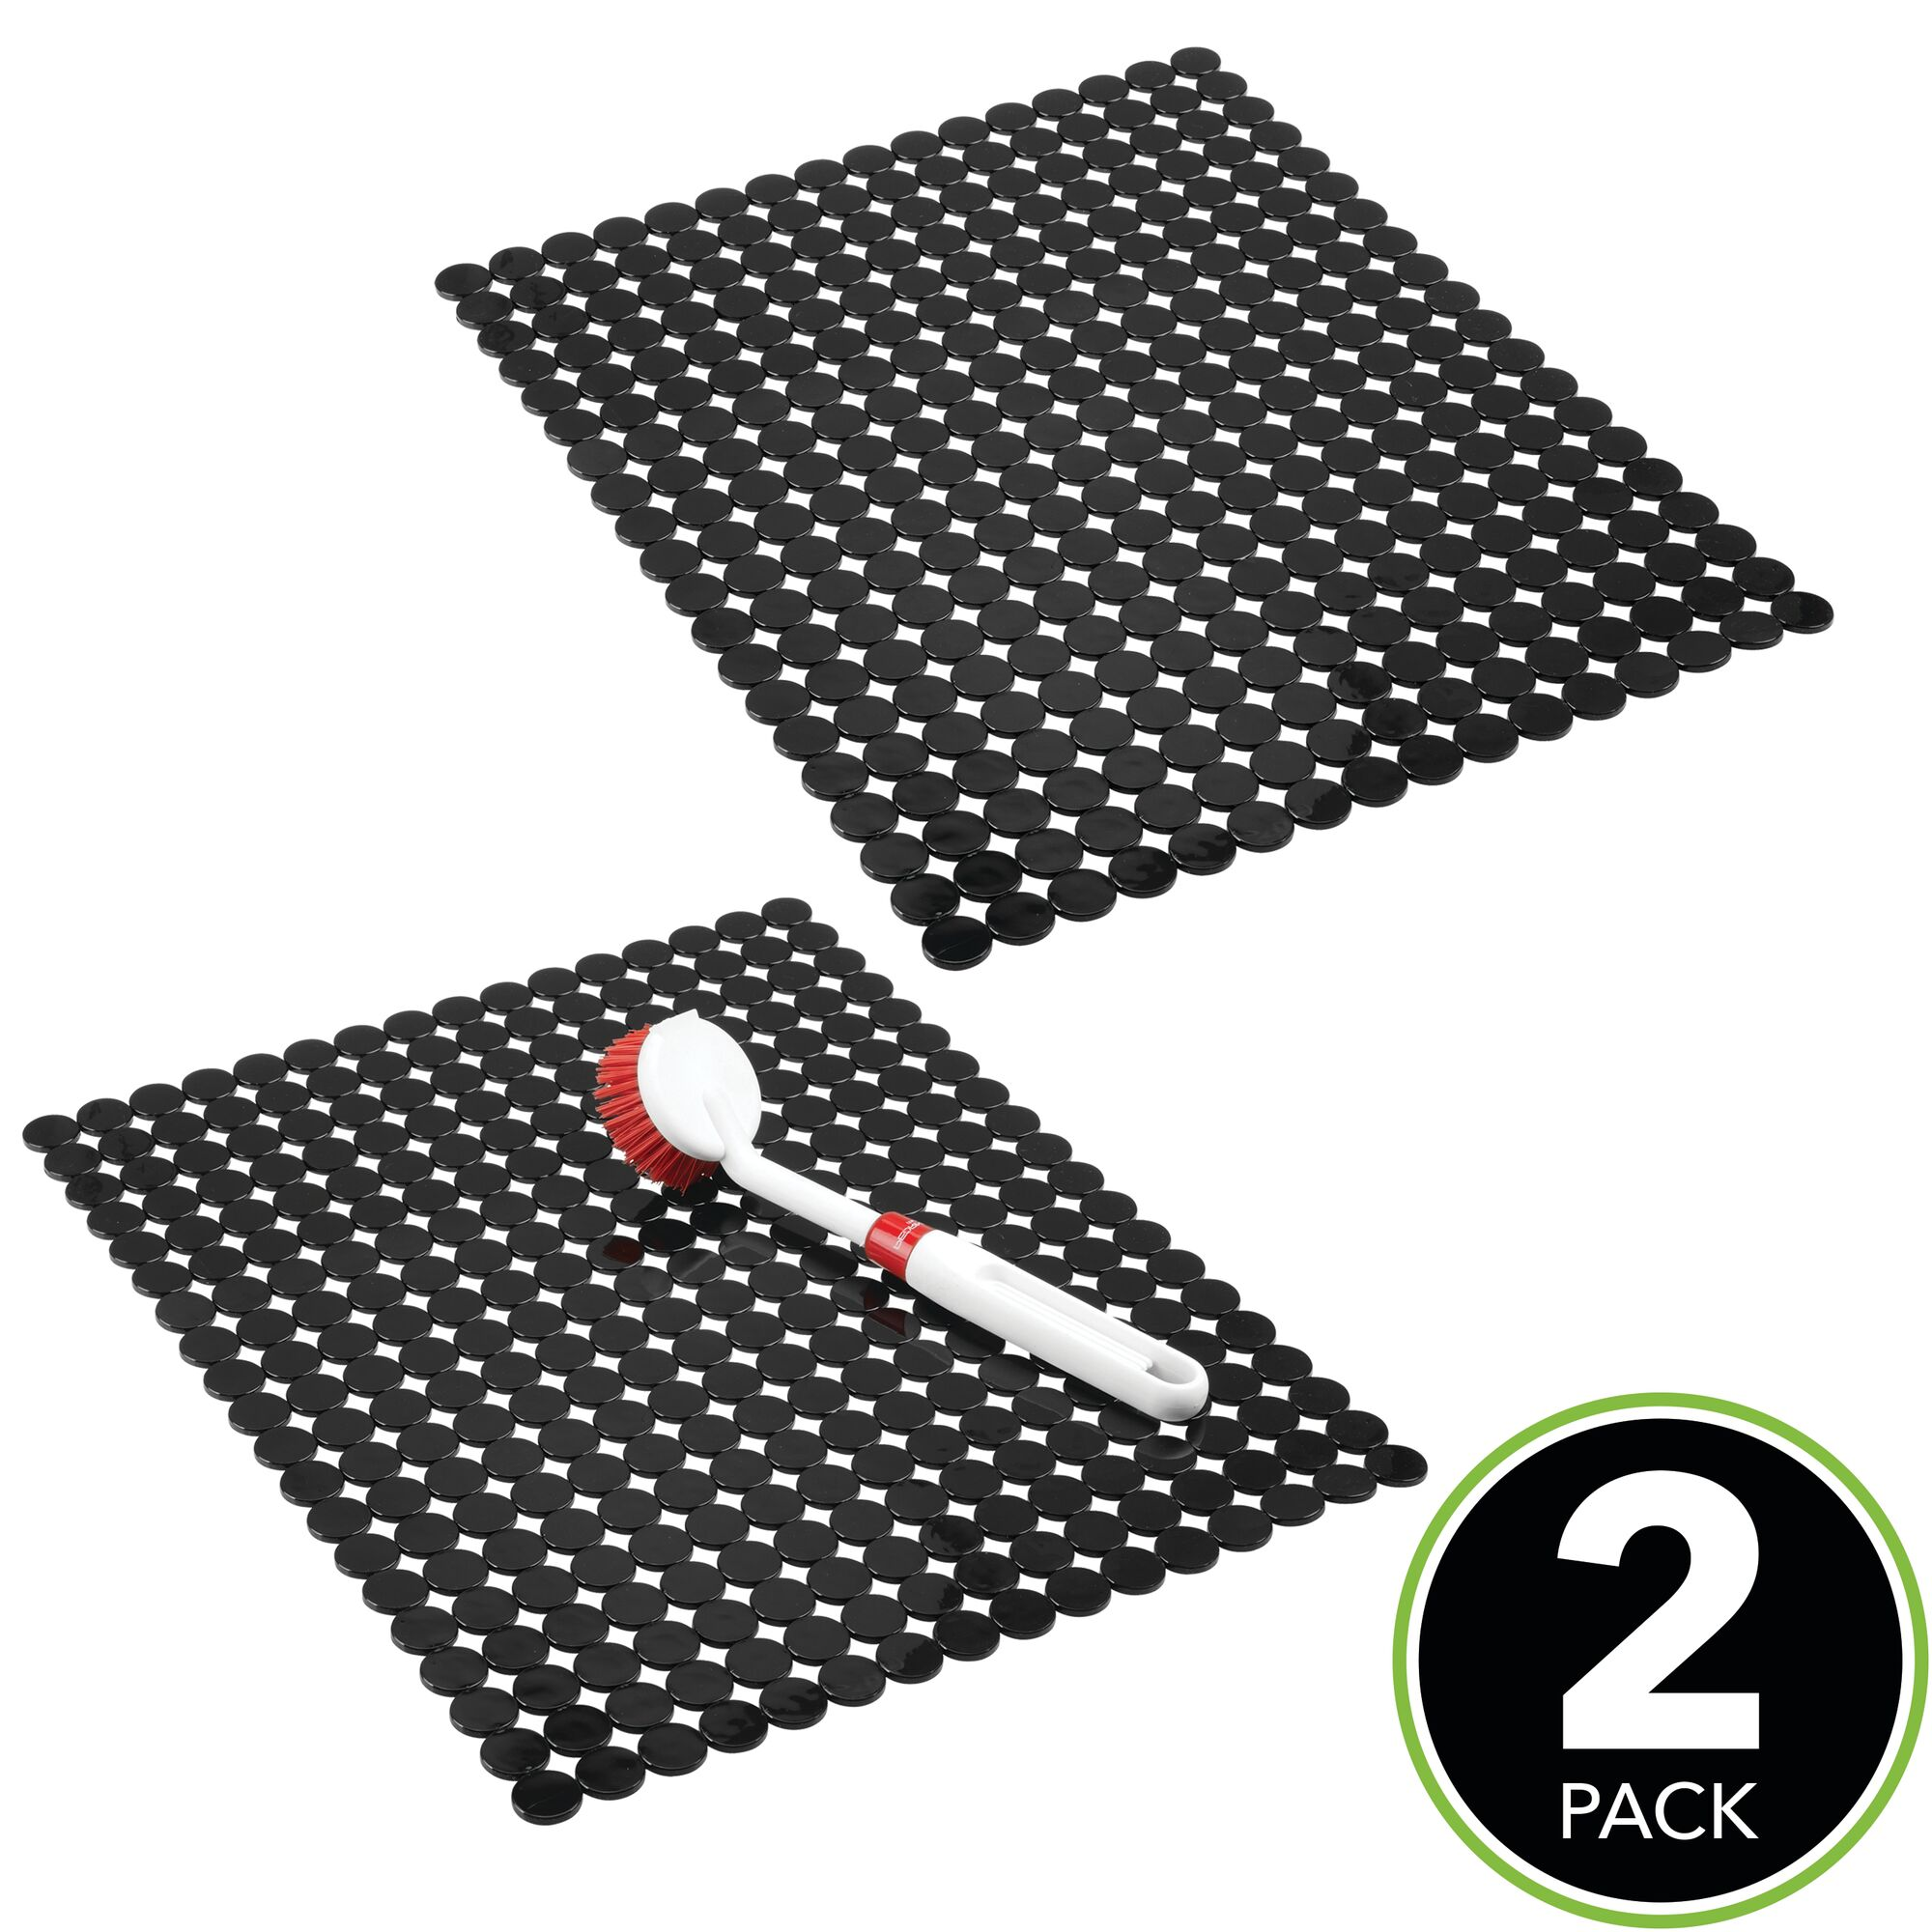 Mdesign Kitchen Sink Protector Mat Circle Design Large 2 Pack